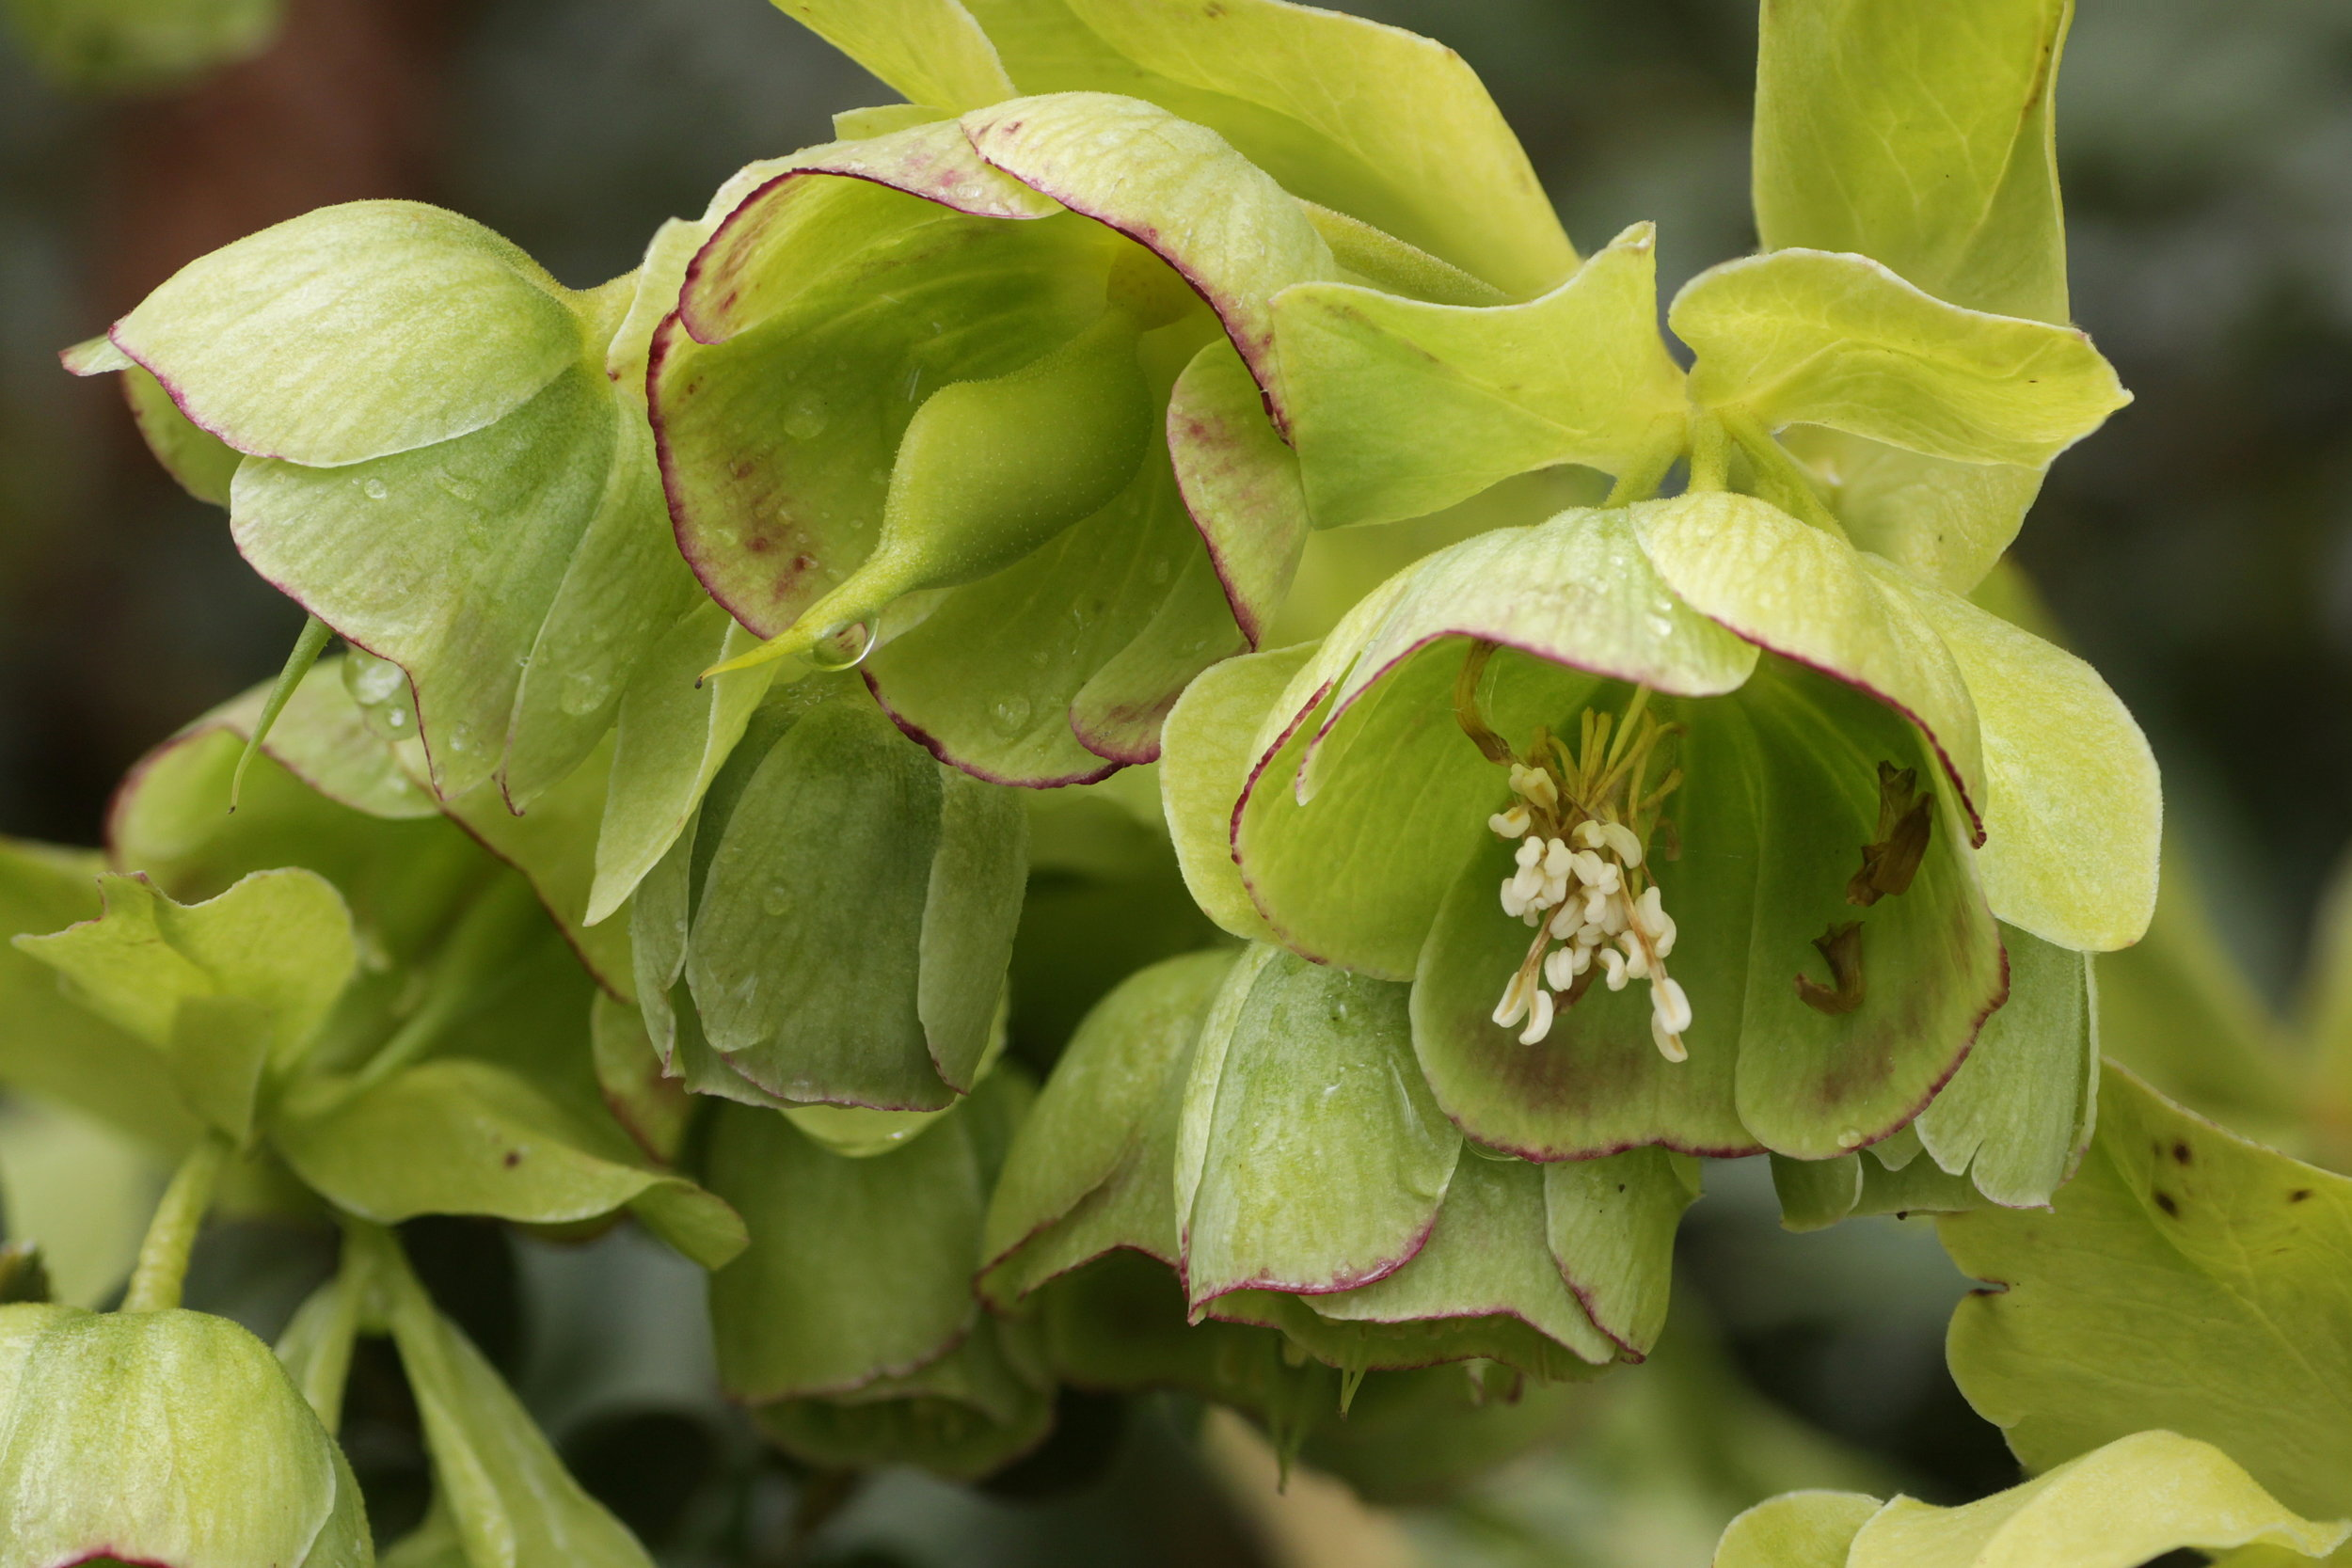 Do Yeasts Aid Pollination For The Stinking Hellebore In Defense